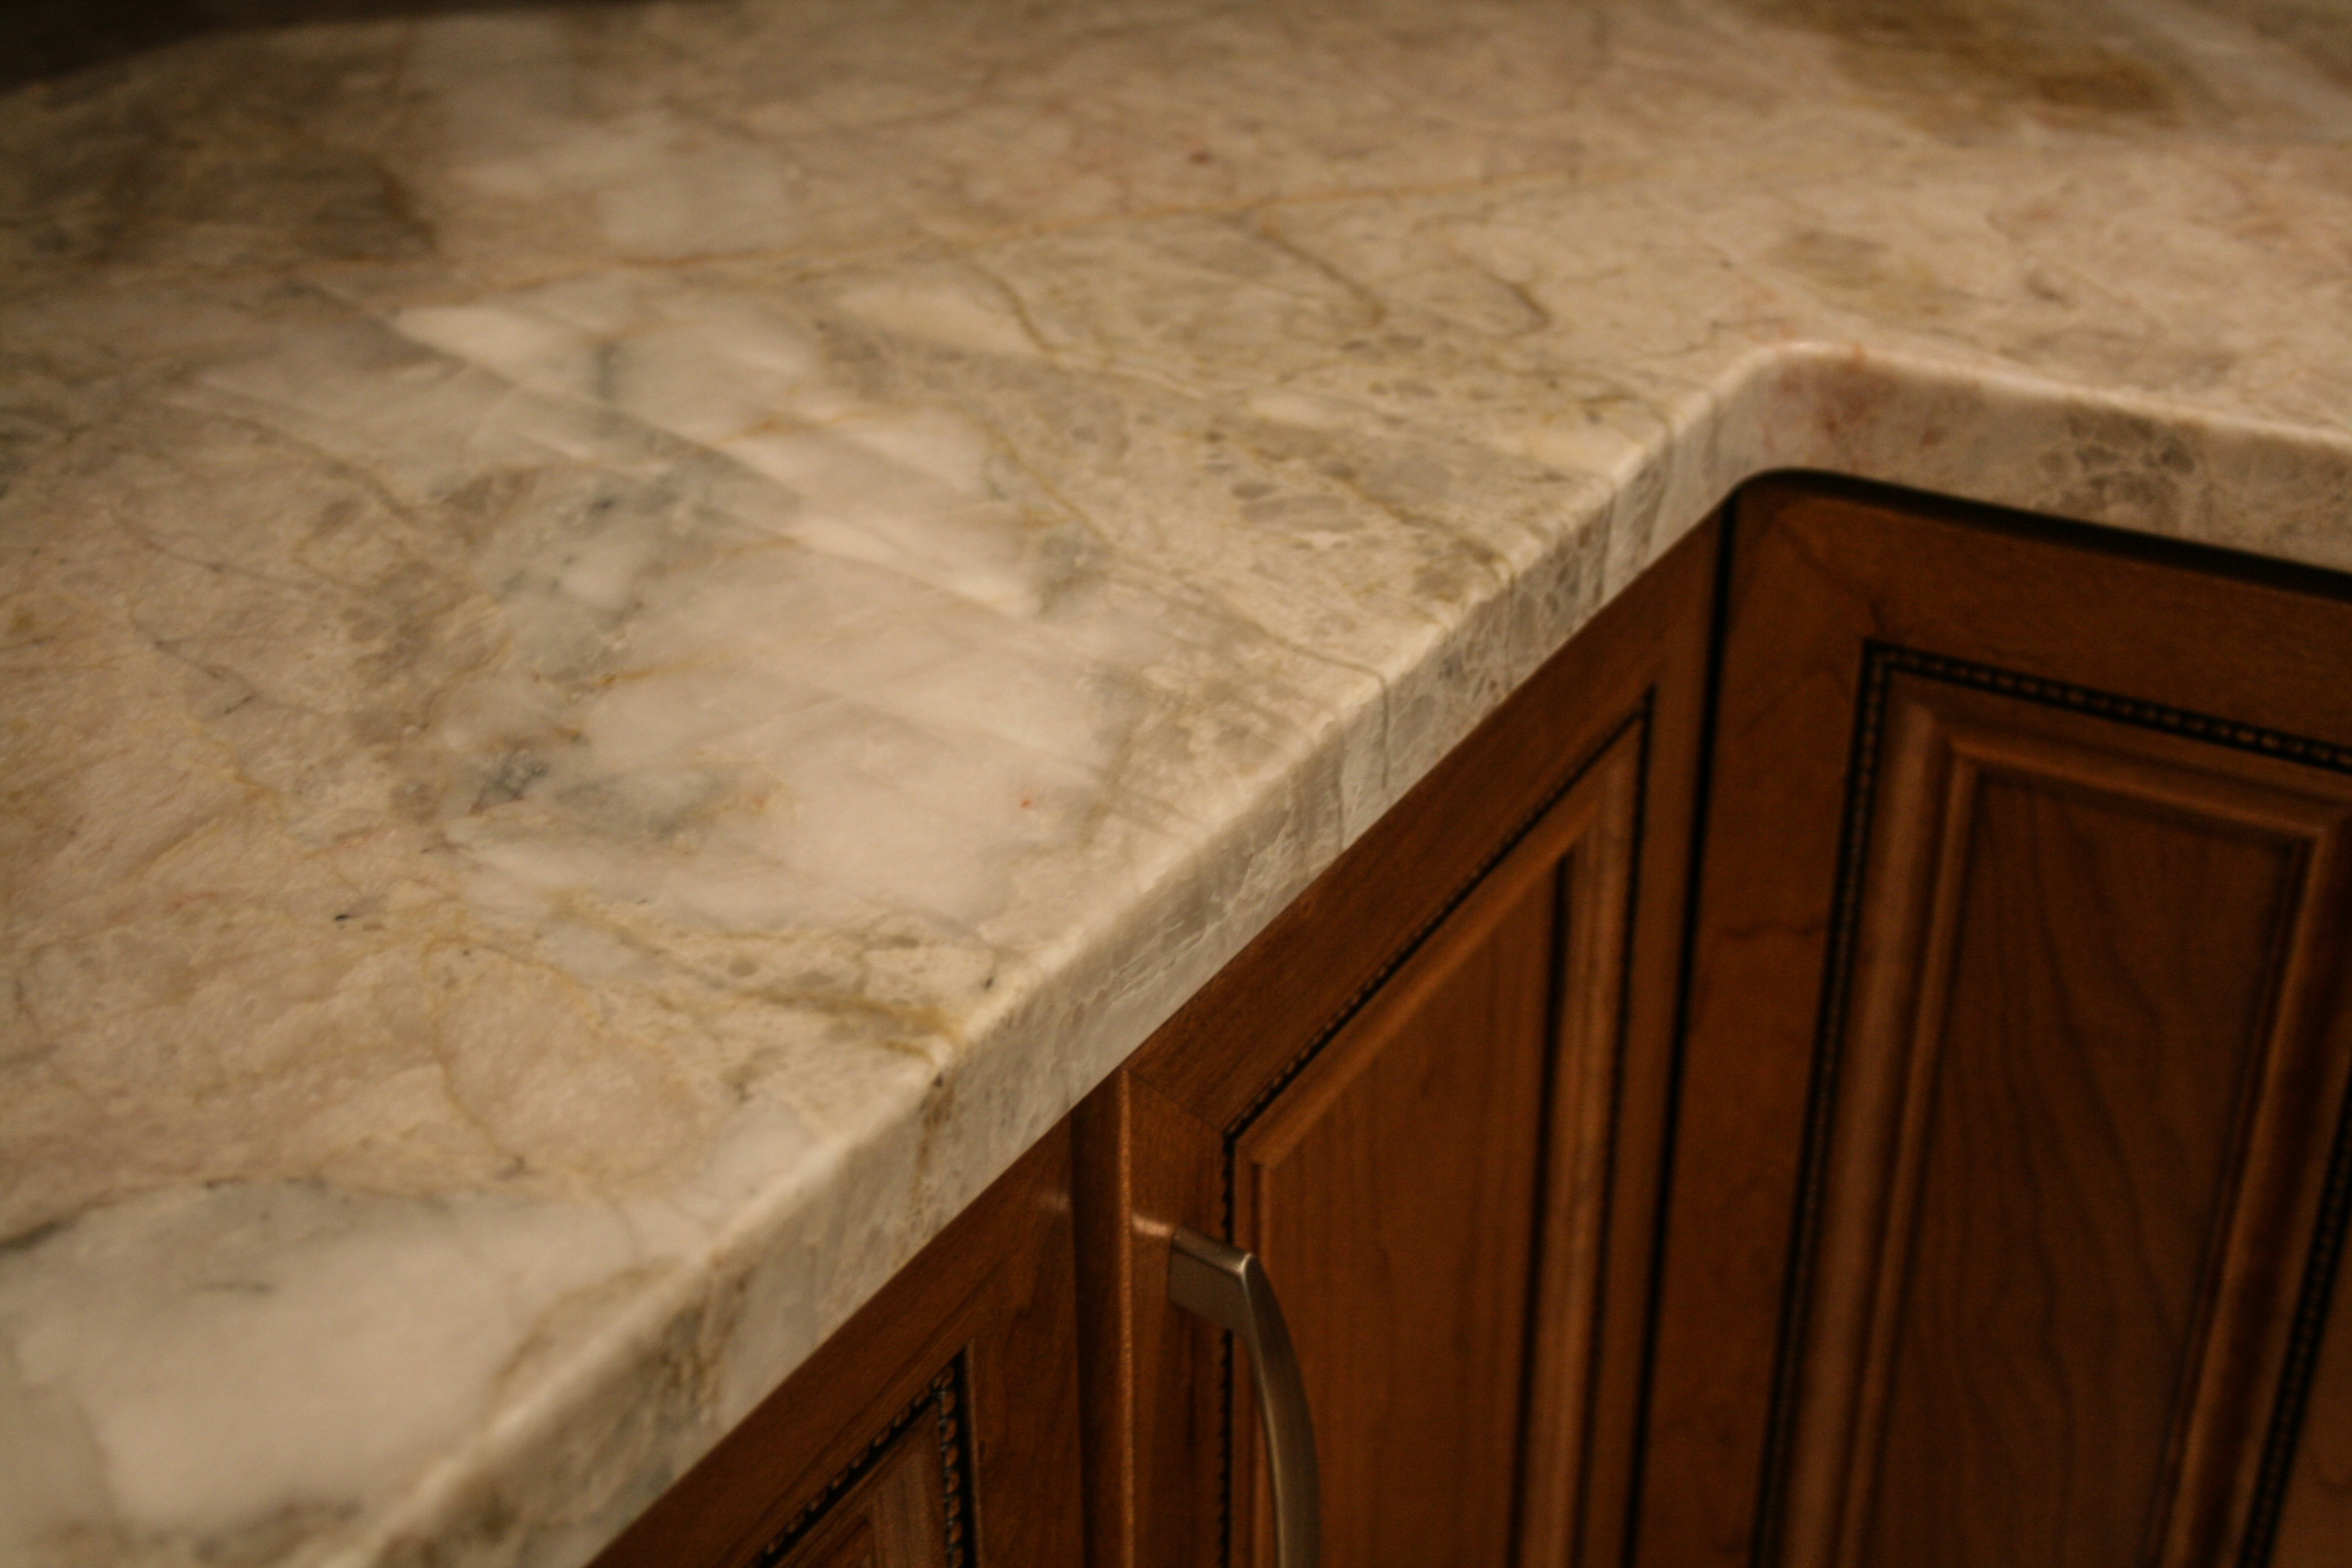 basis countertops to often this it seal decades looking beautiful you regular sealed granite should be keep how on for a